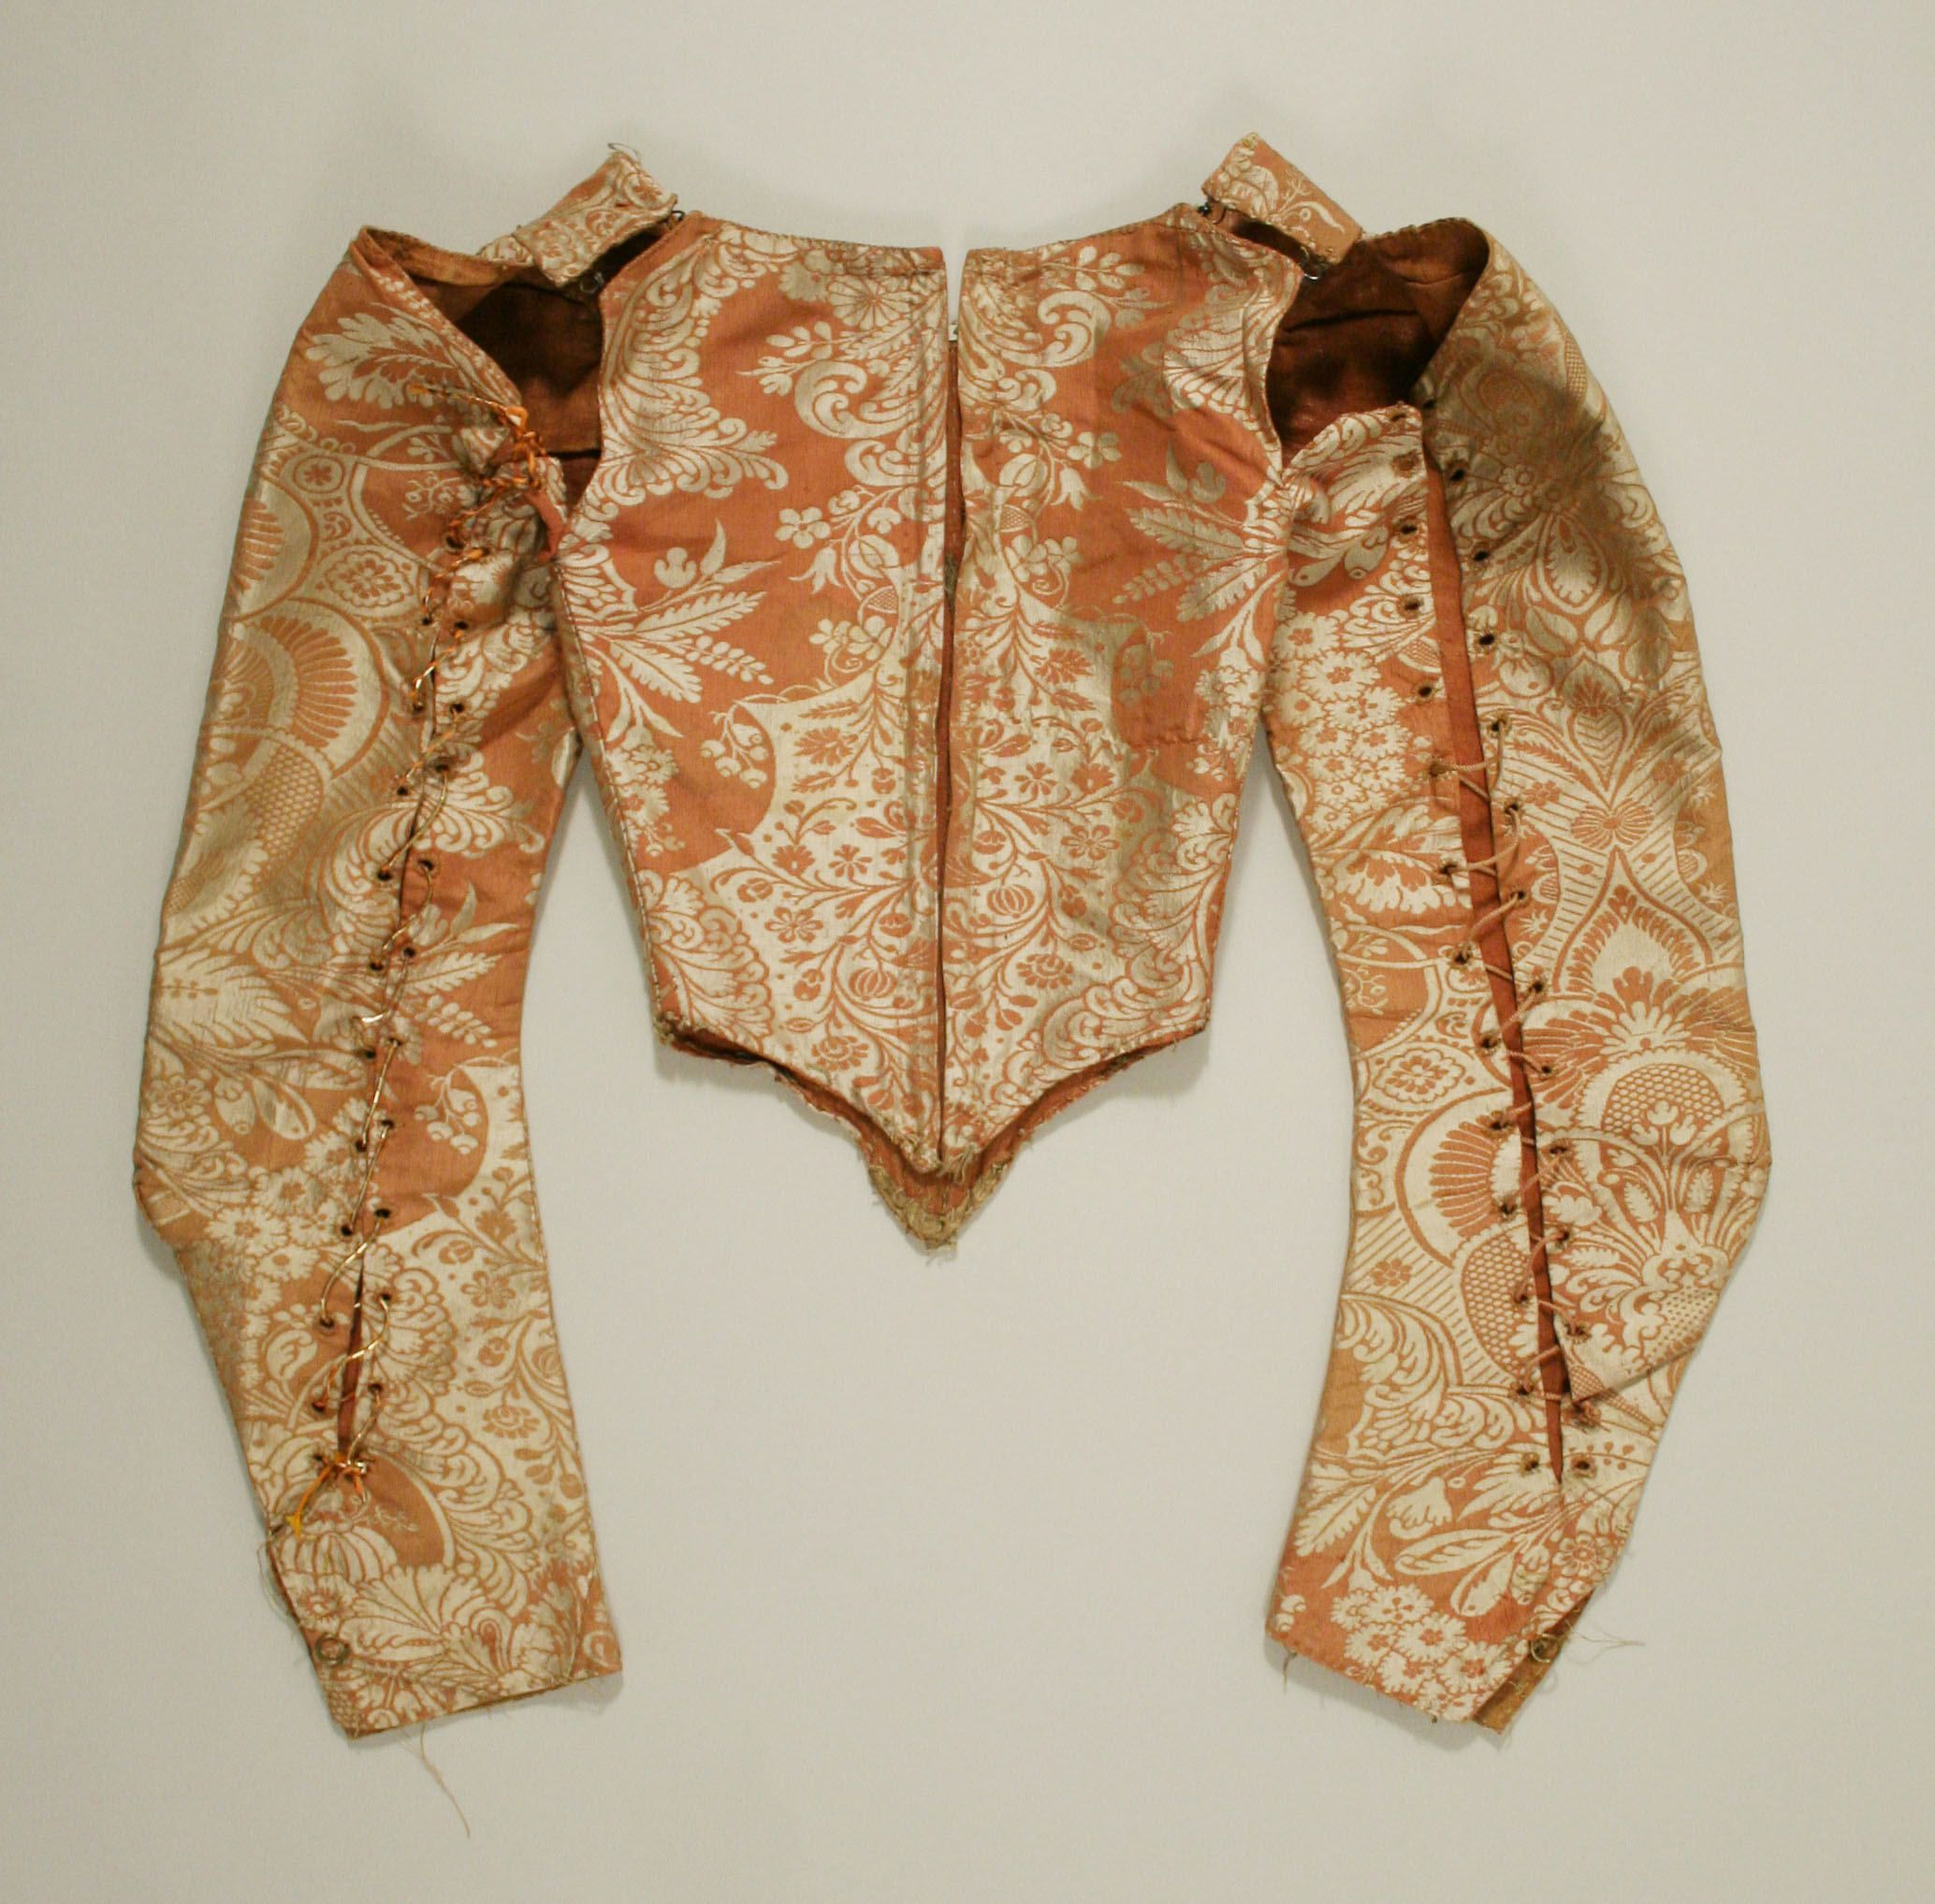 Bodice date th century th century extant and reproductions